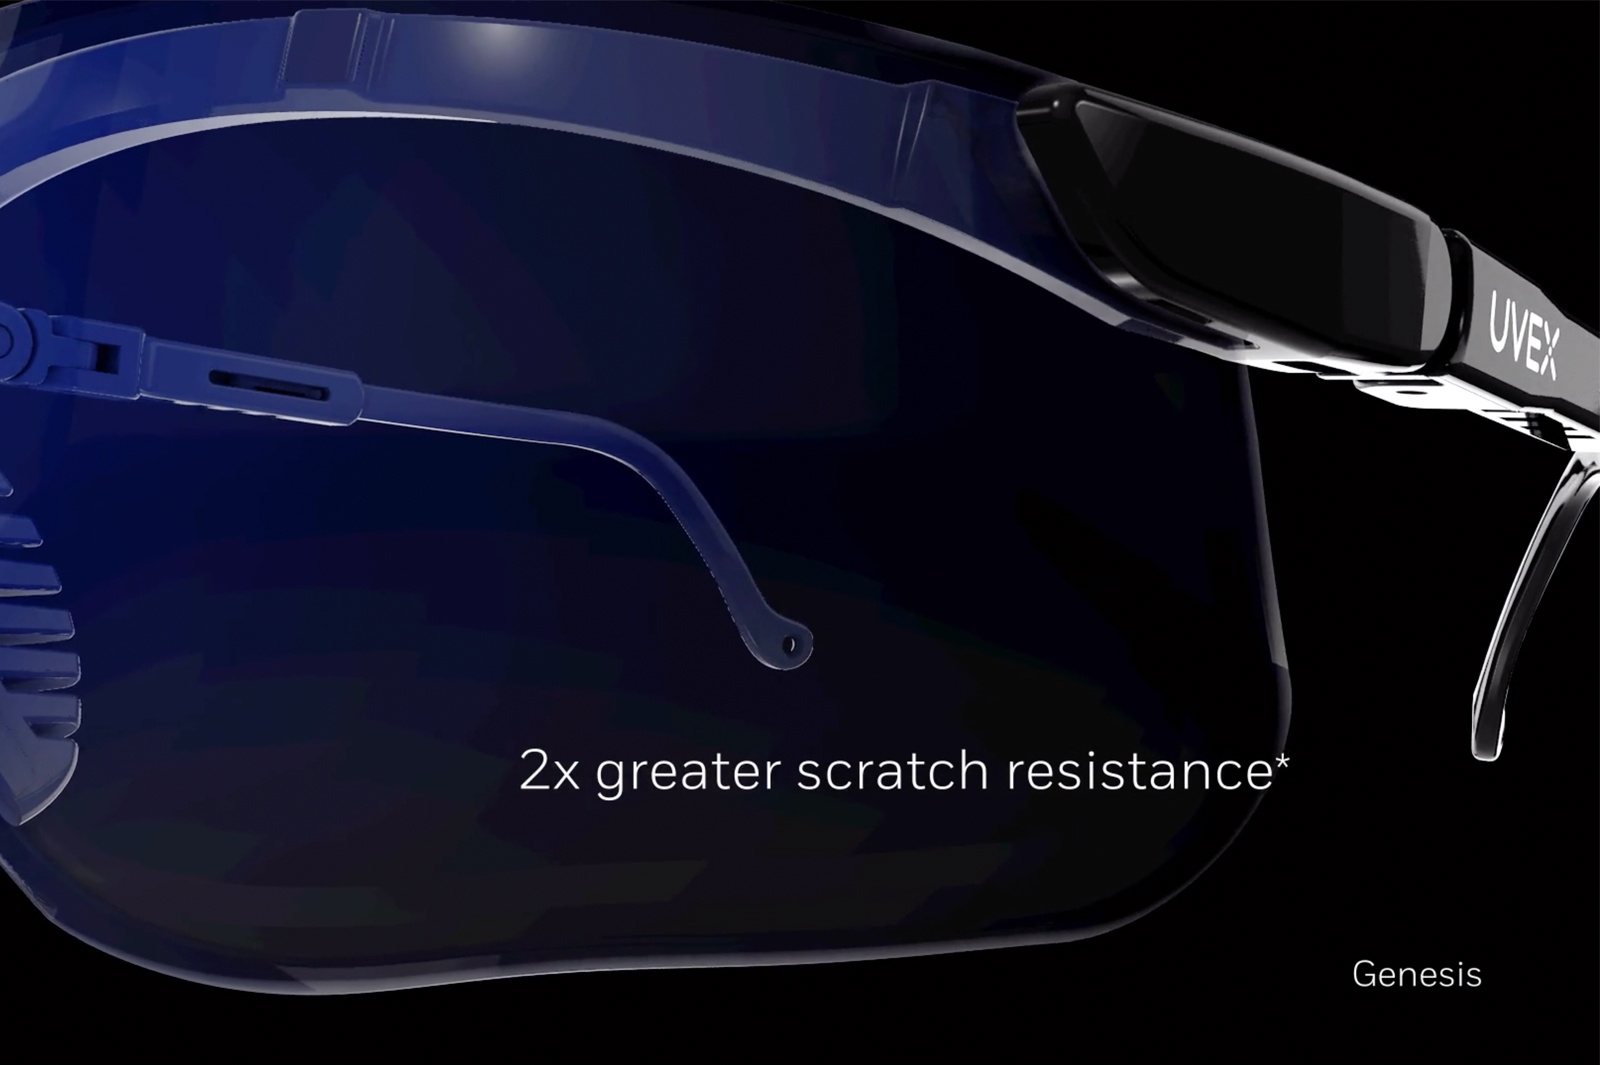 Close up of lenses with 2x greater scratch resistance. UVEX - Genesis